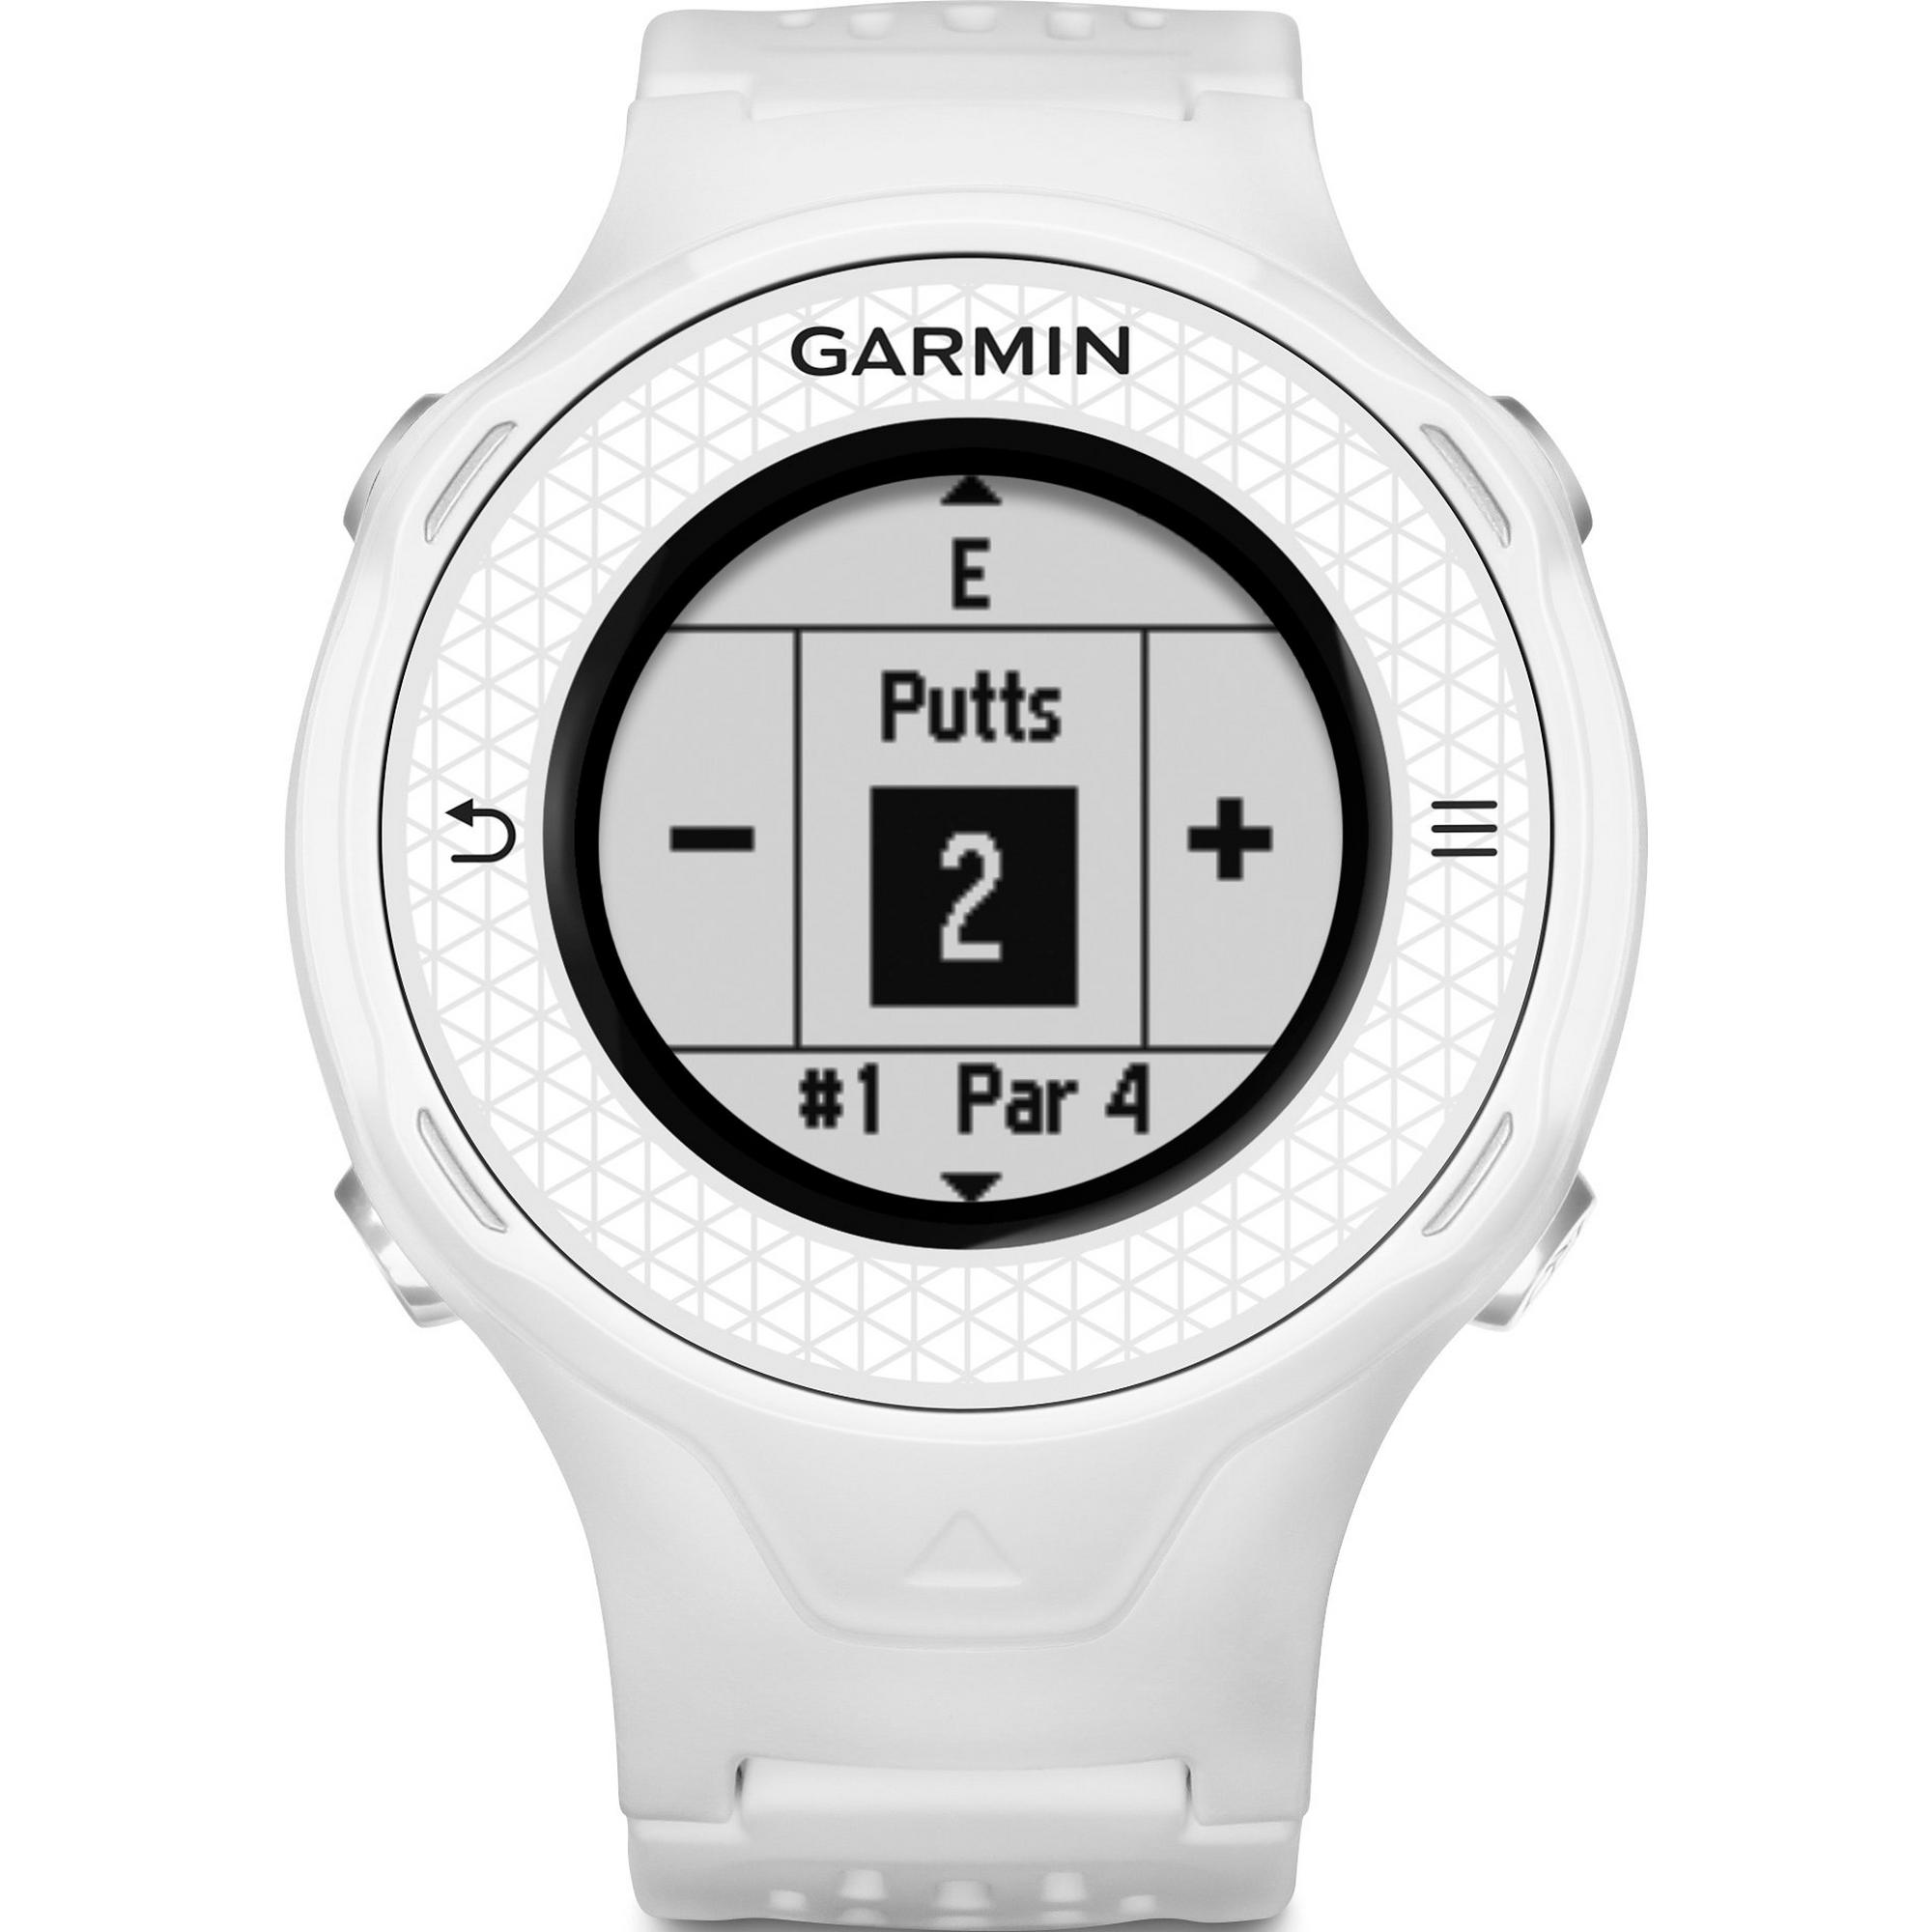 Approach S4 White GPS Watch